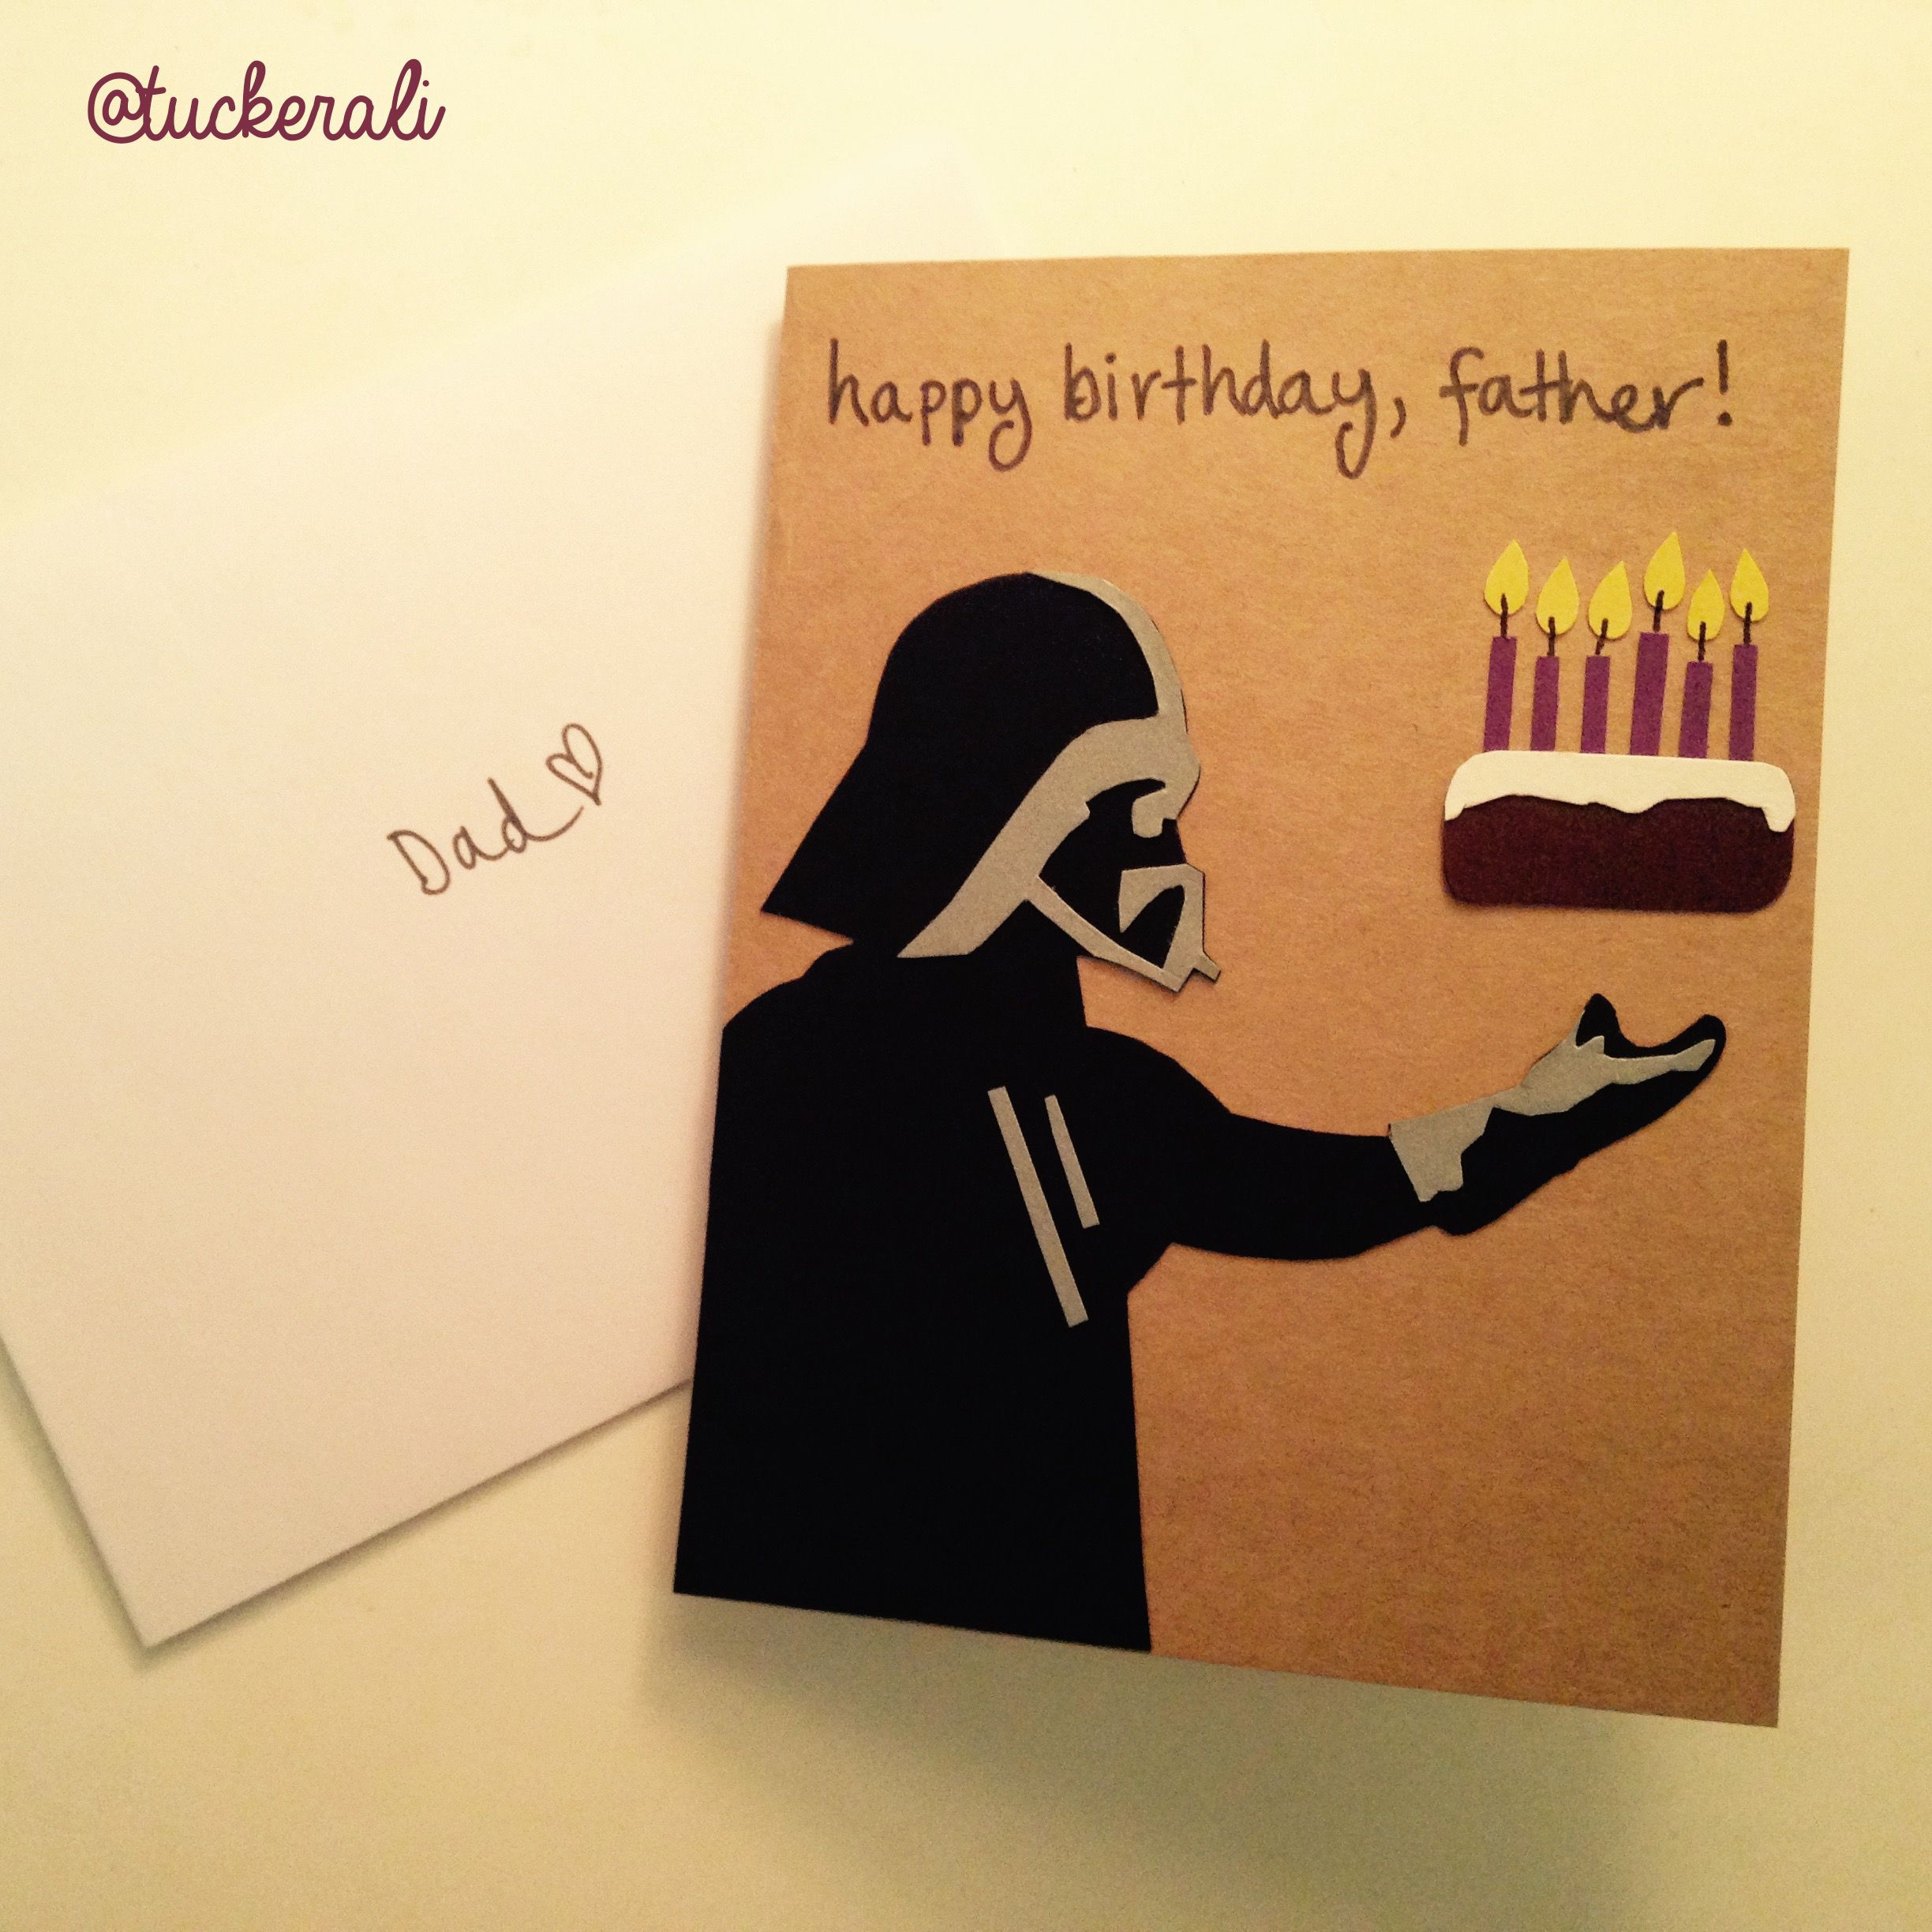 Cool Birthday Card Ideas Cards Funny Birthday Card Ideas Superb Today In Ali Does Crafts